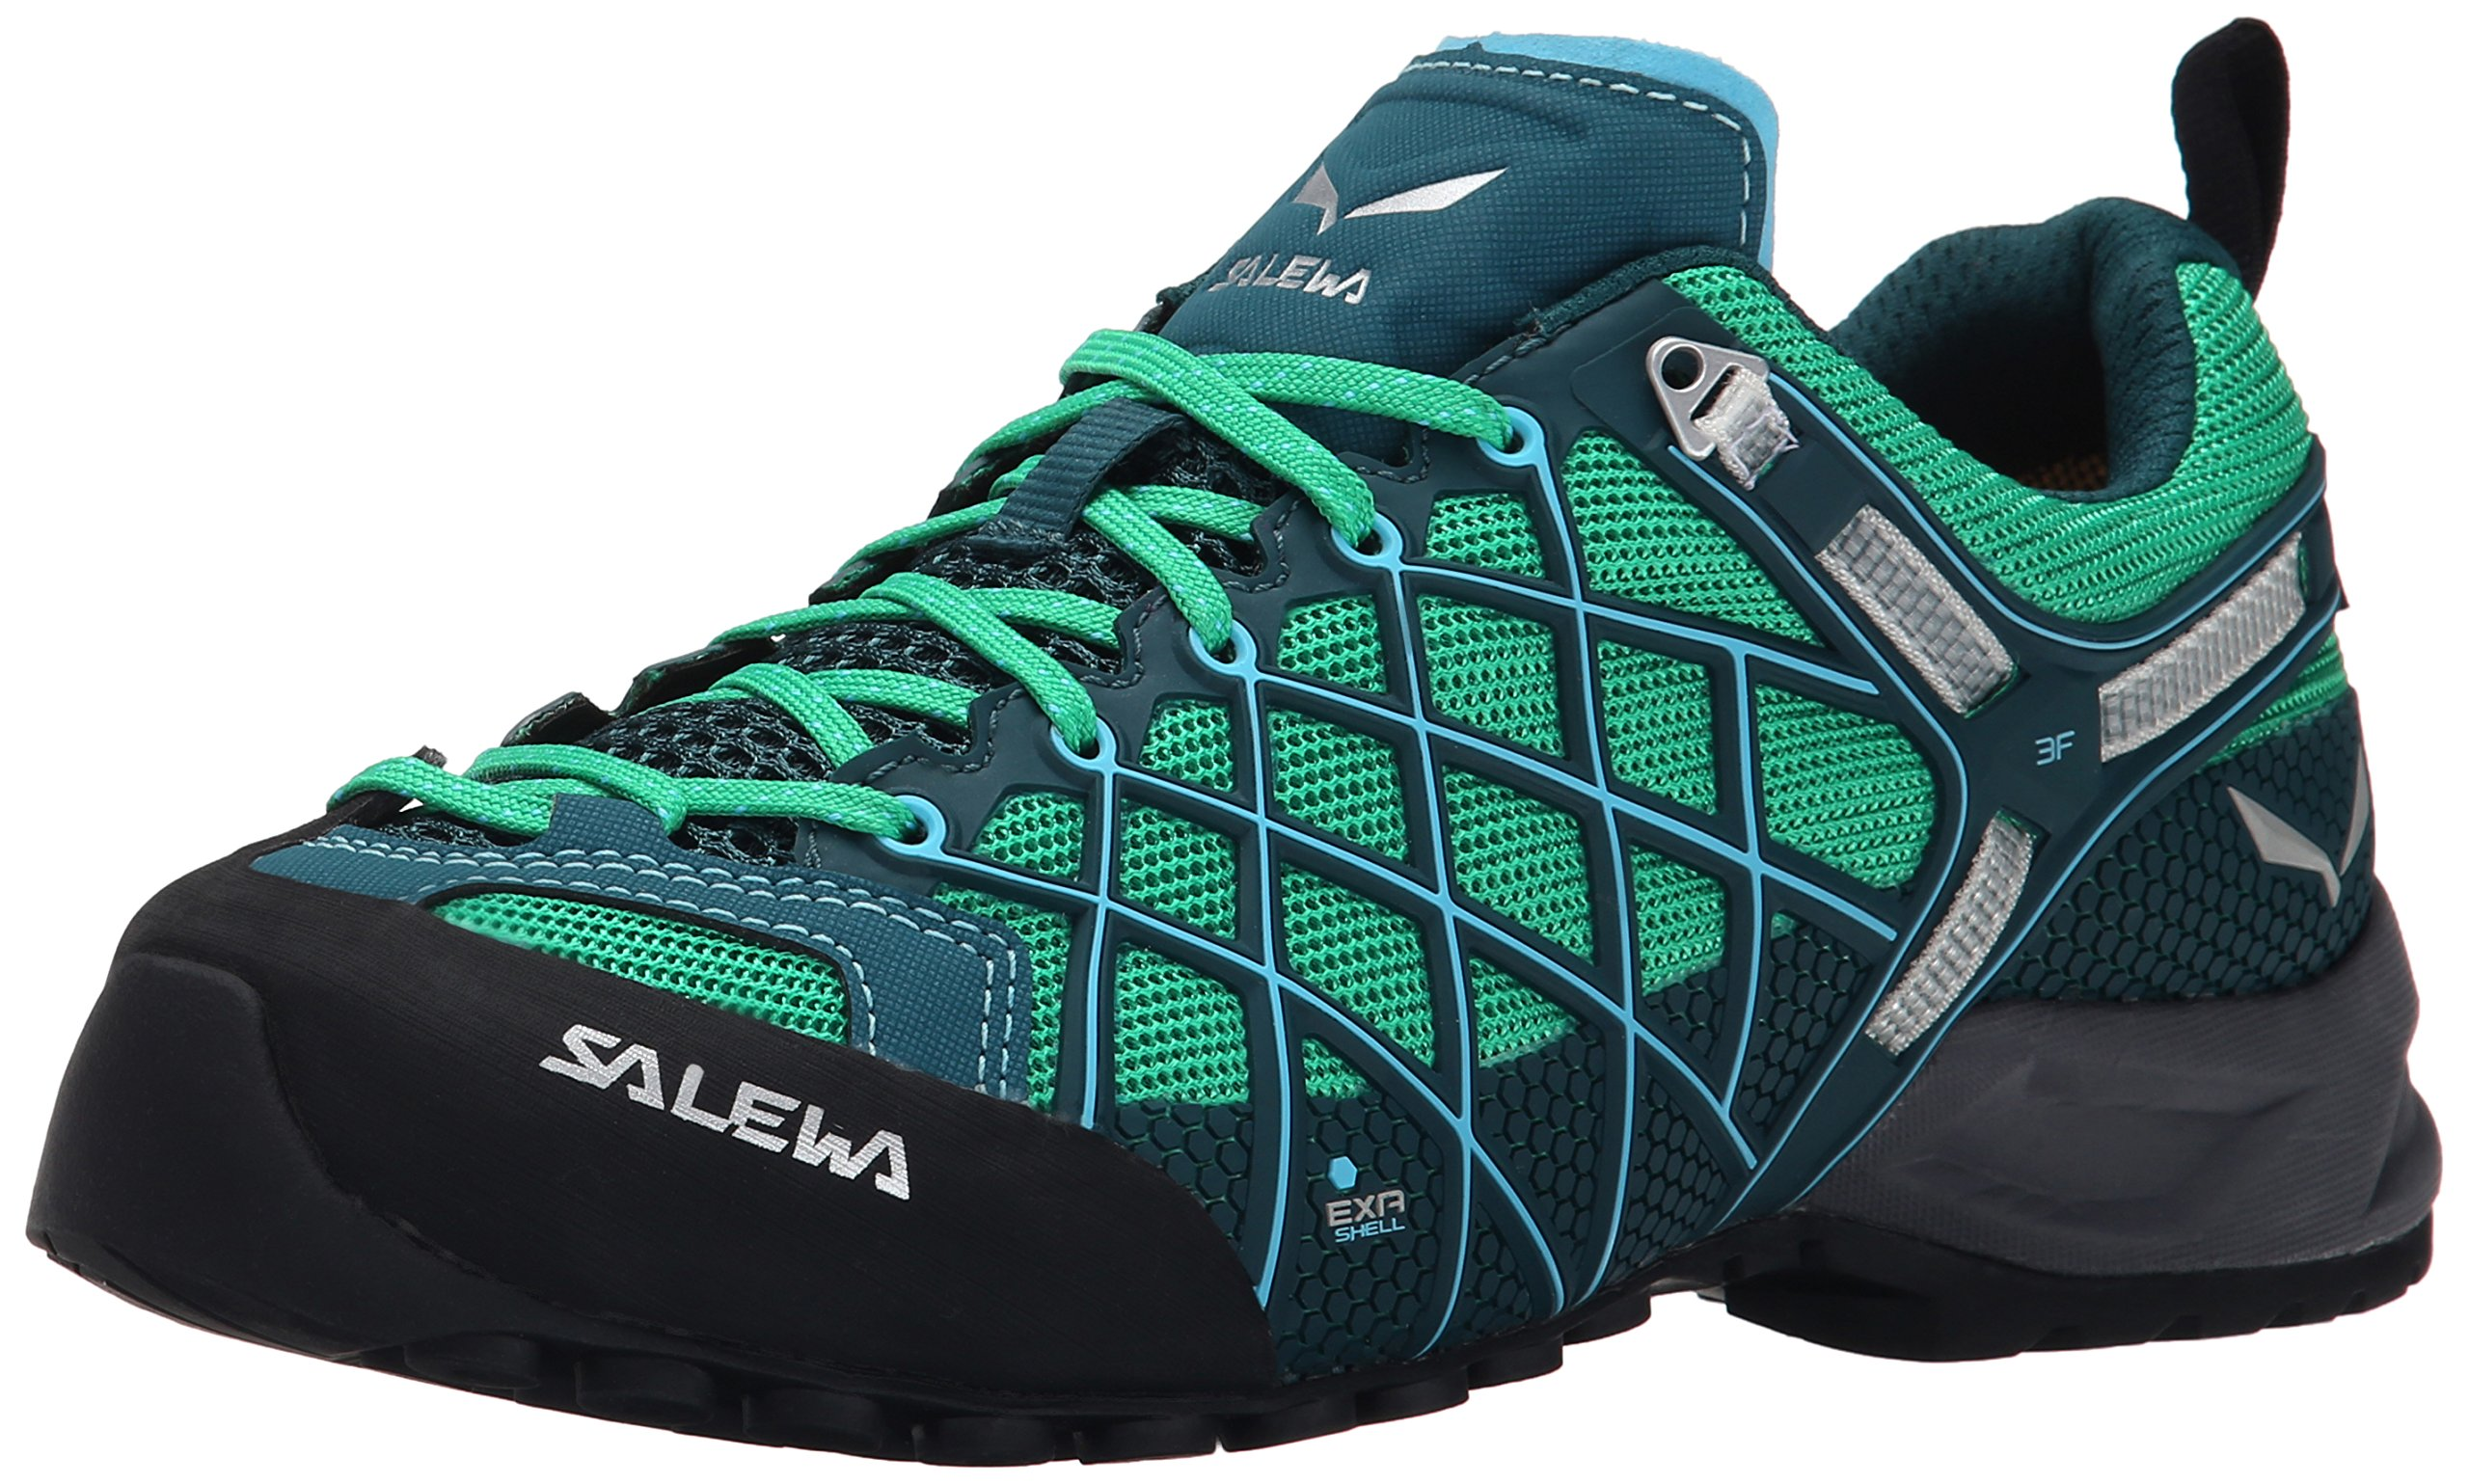 Salewa Women's Wildfire S GTX Technical Approach Shoe, Cypress/River Blue, 6.5 M US